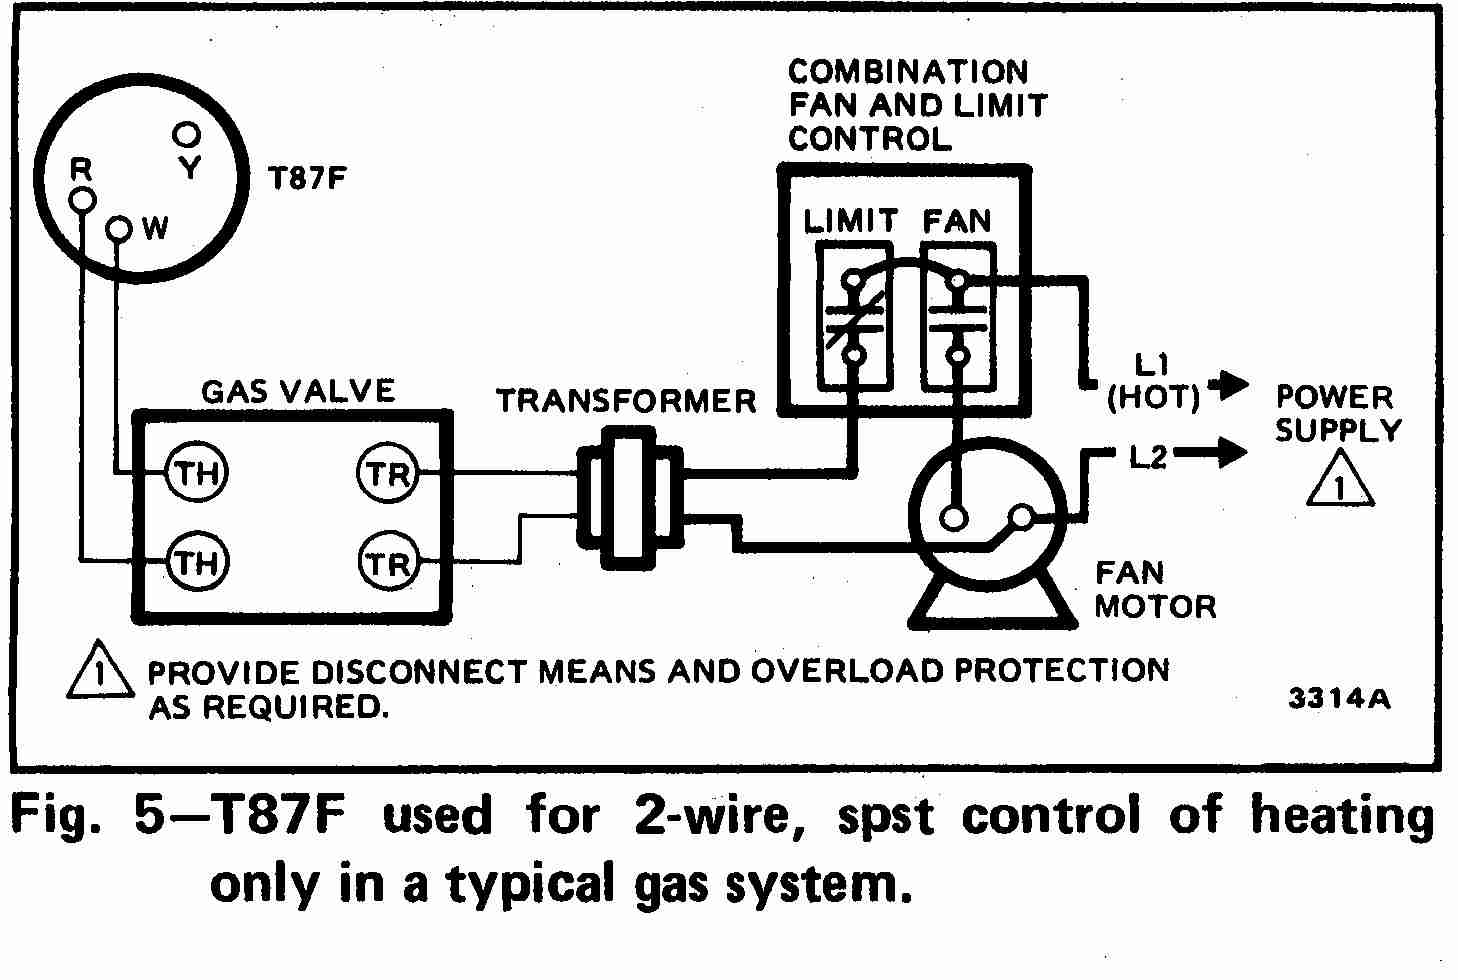 TT_T87F_0002_2Wg_DJF room thermostat wiring diagrams for hvac systems modine wiring diagram at alyssarenee.co